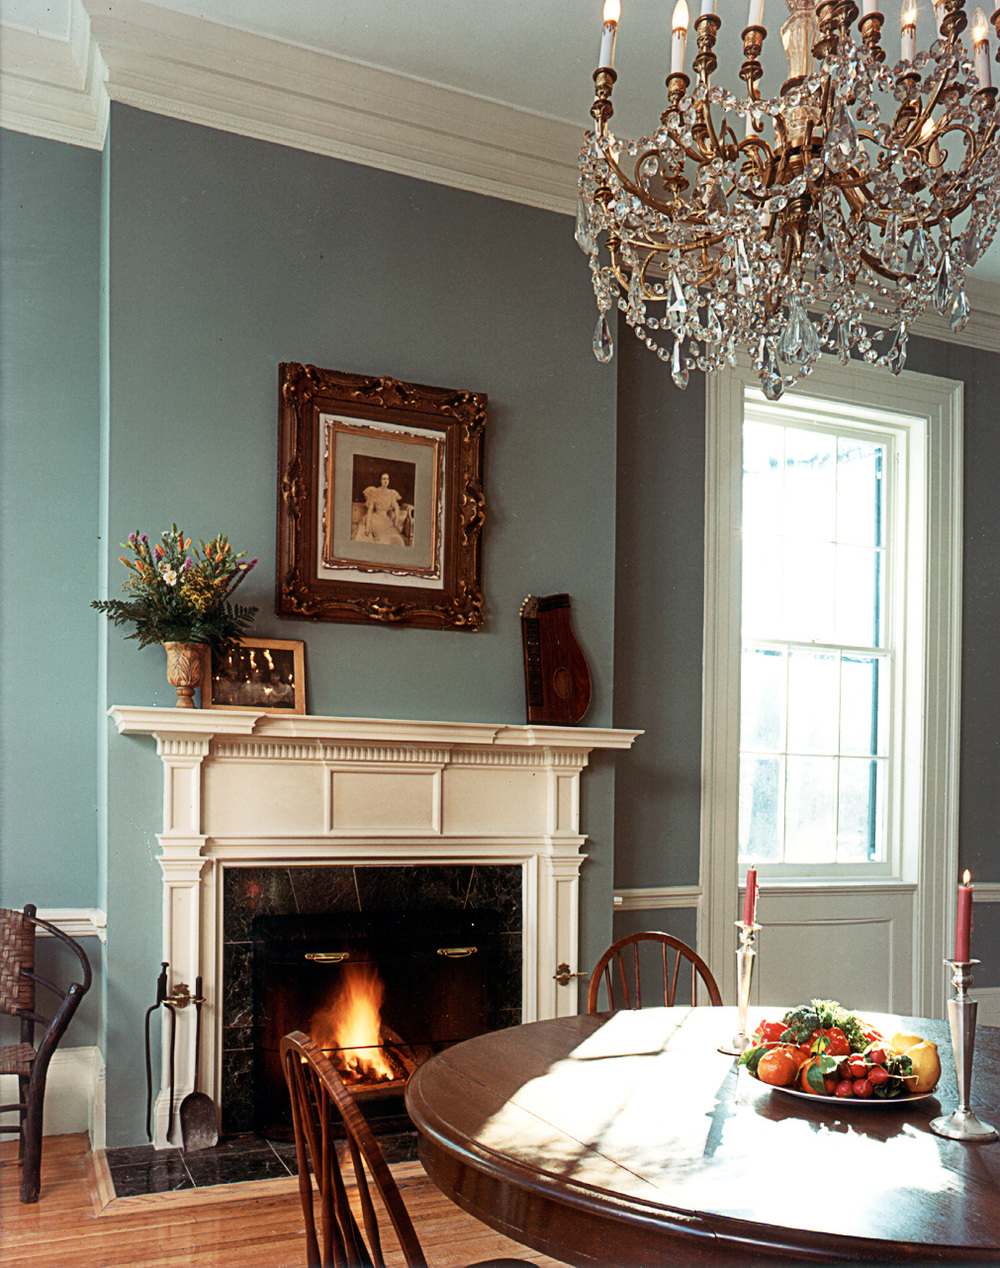 Mystery Point - Interior - Fireplace.jpg